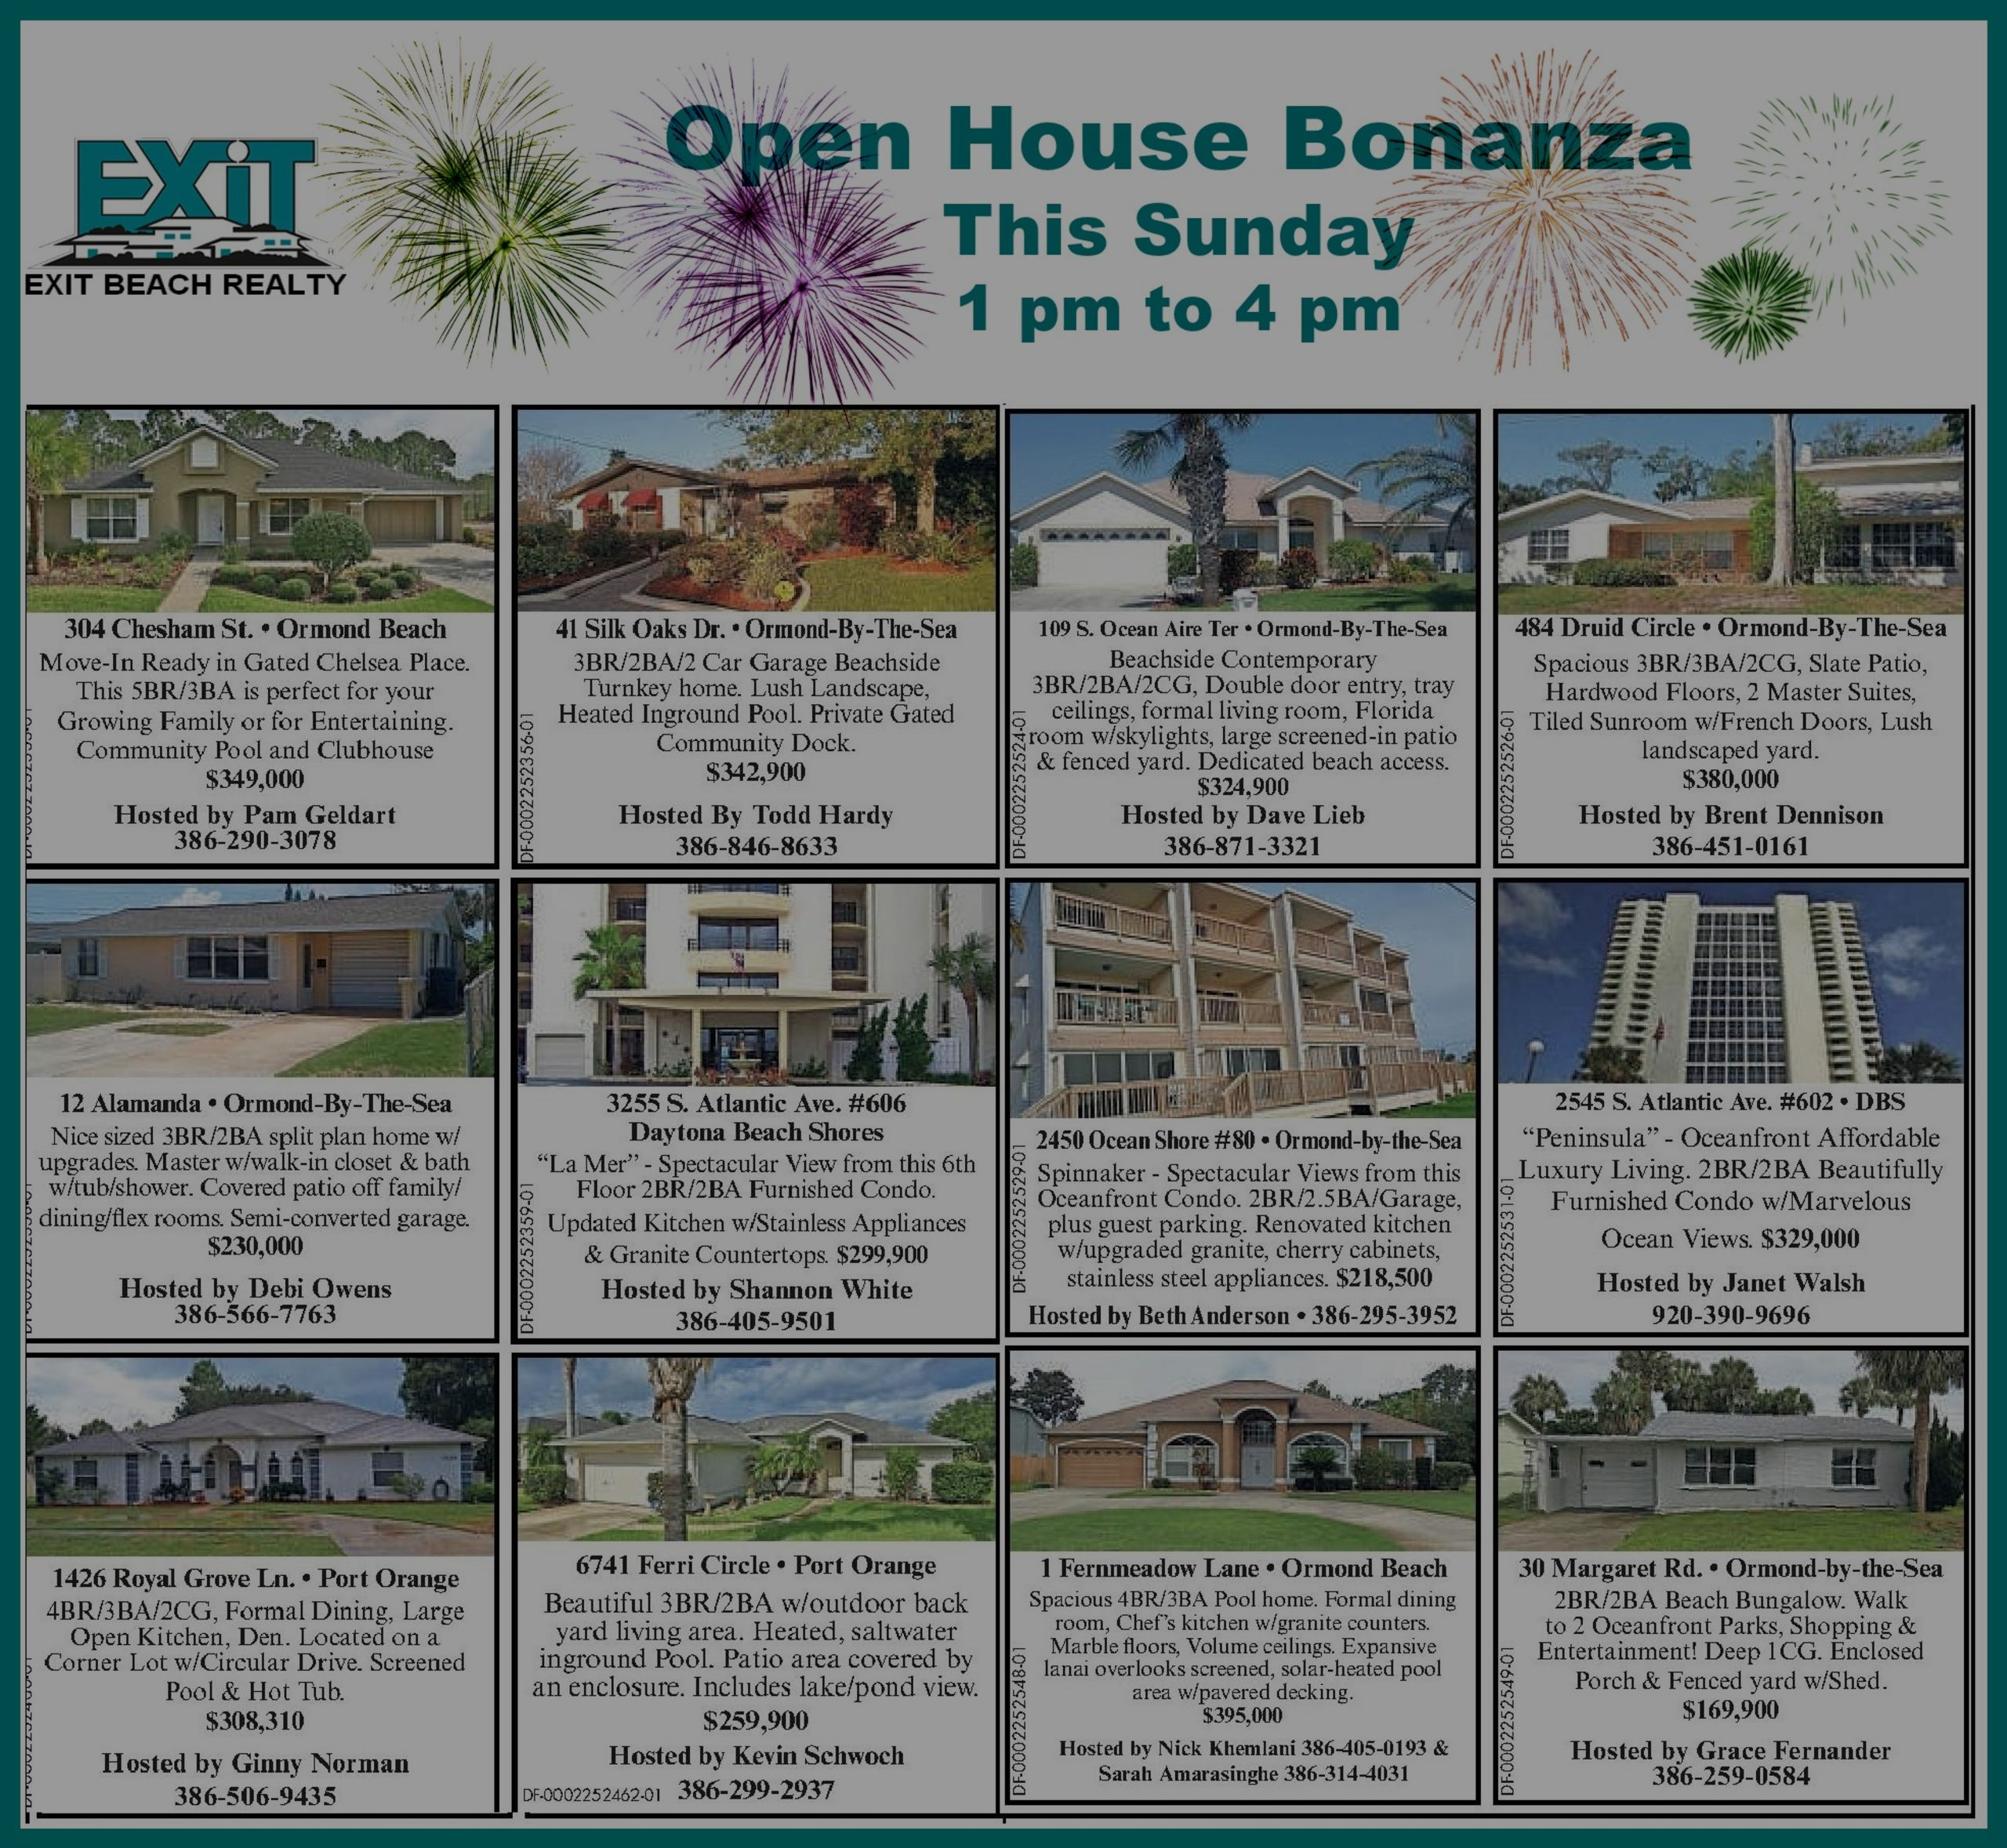 OPEN HOUSE BONANZA – Sunday 1 pm to 4 pm